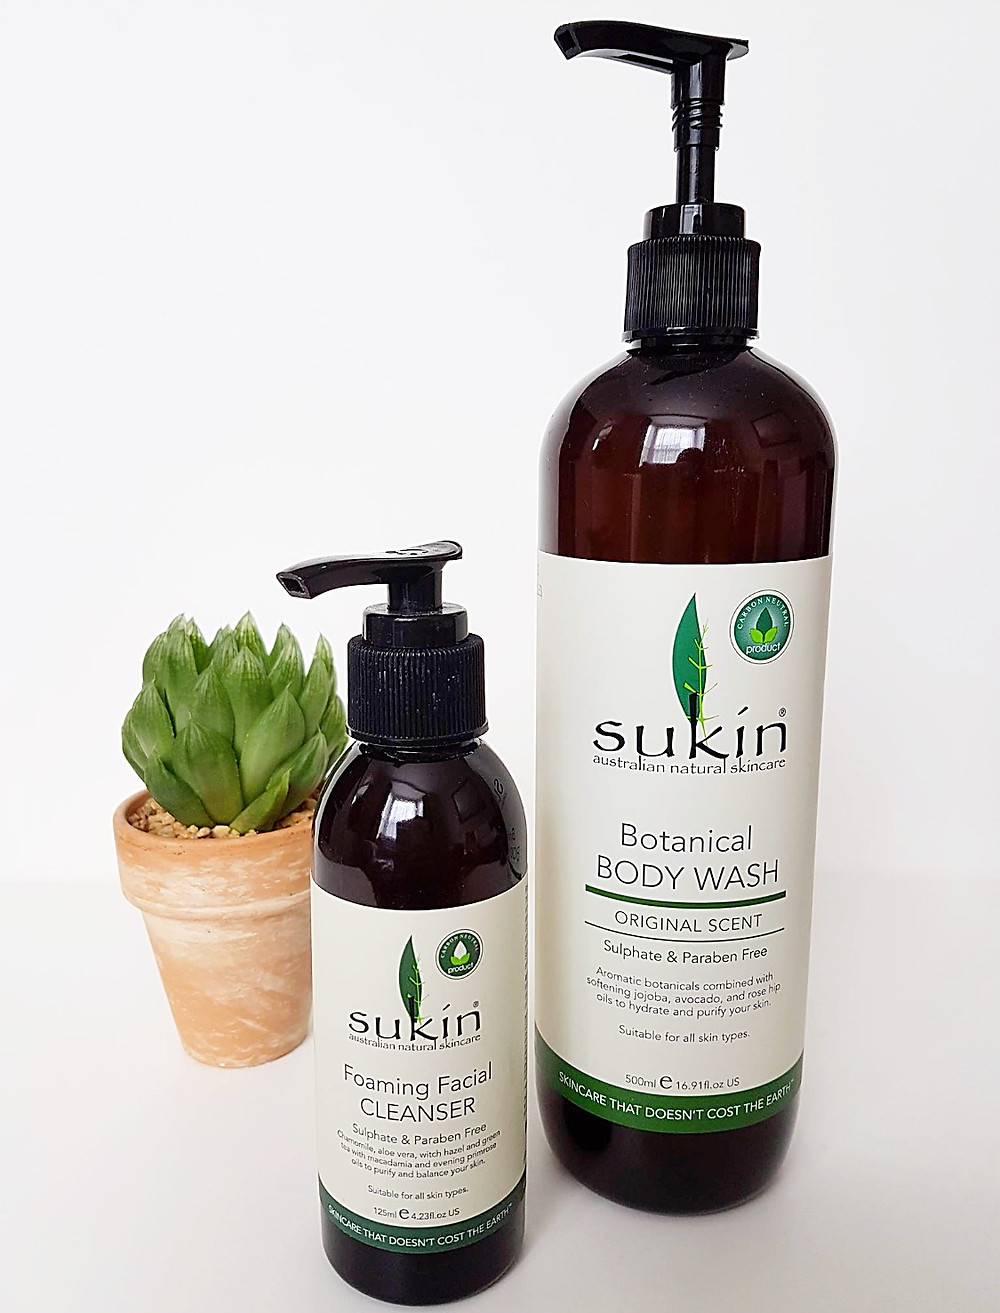 Sukin Vegan Natural Skincare